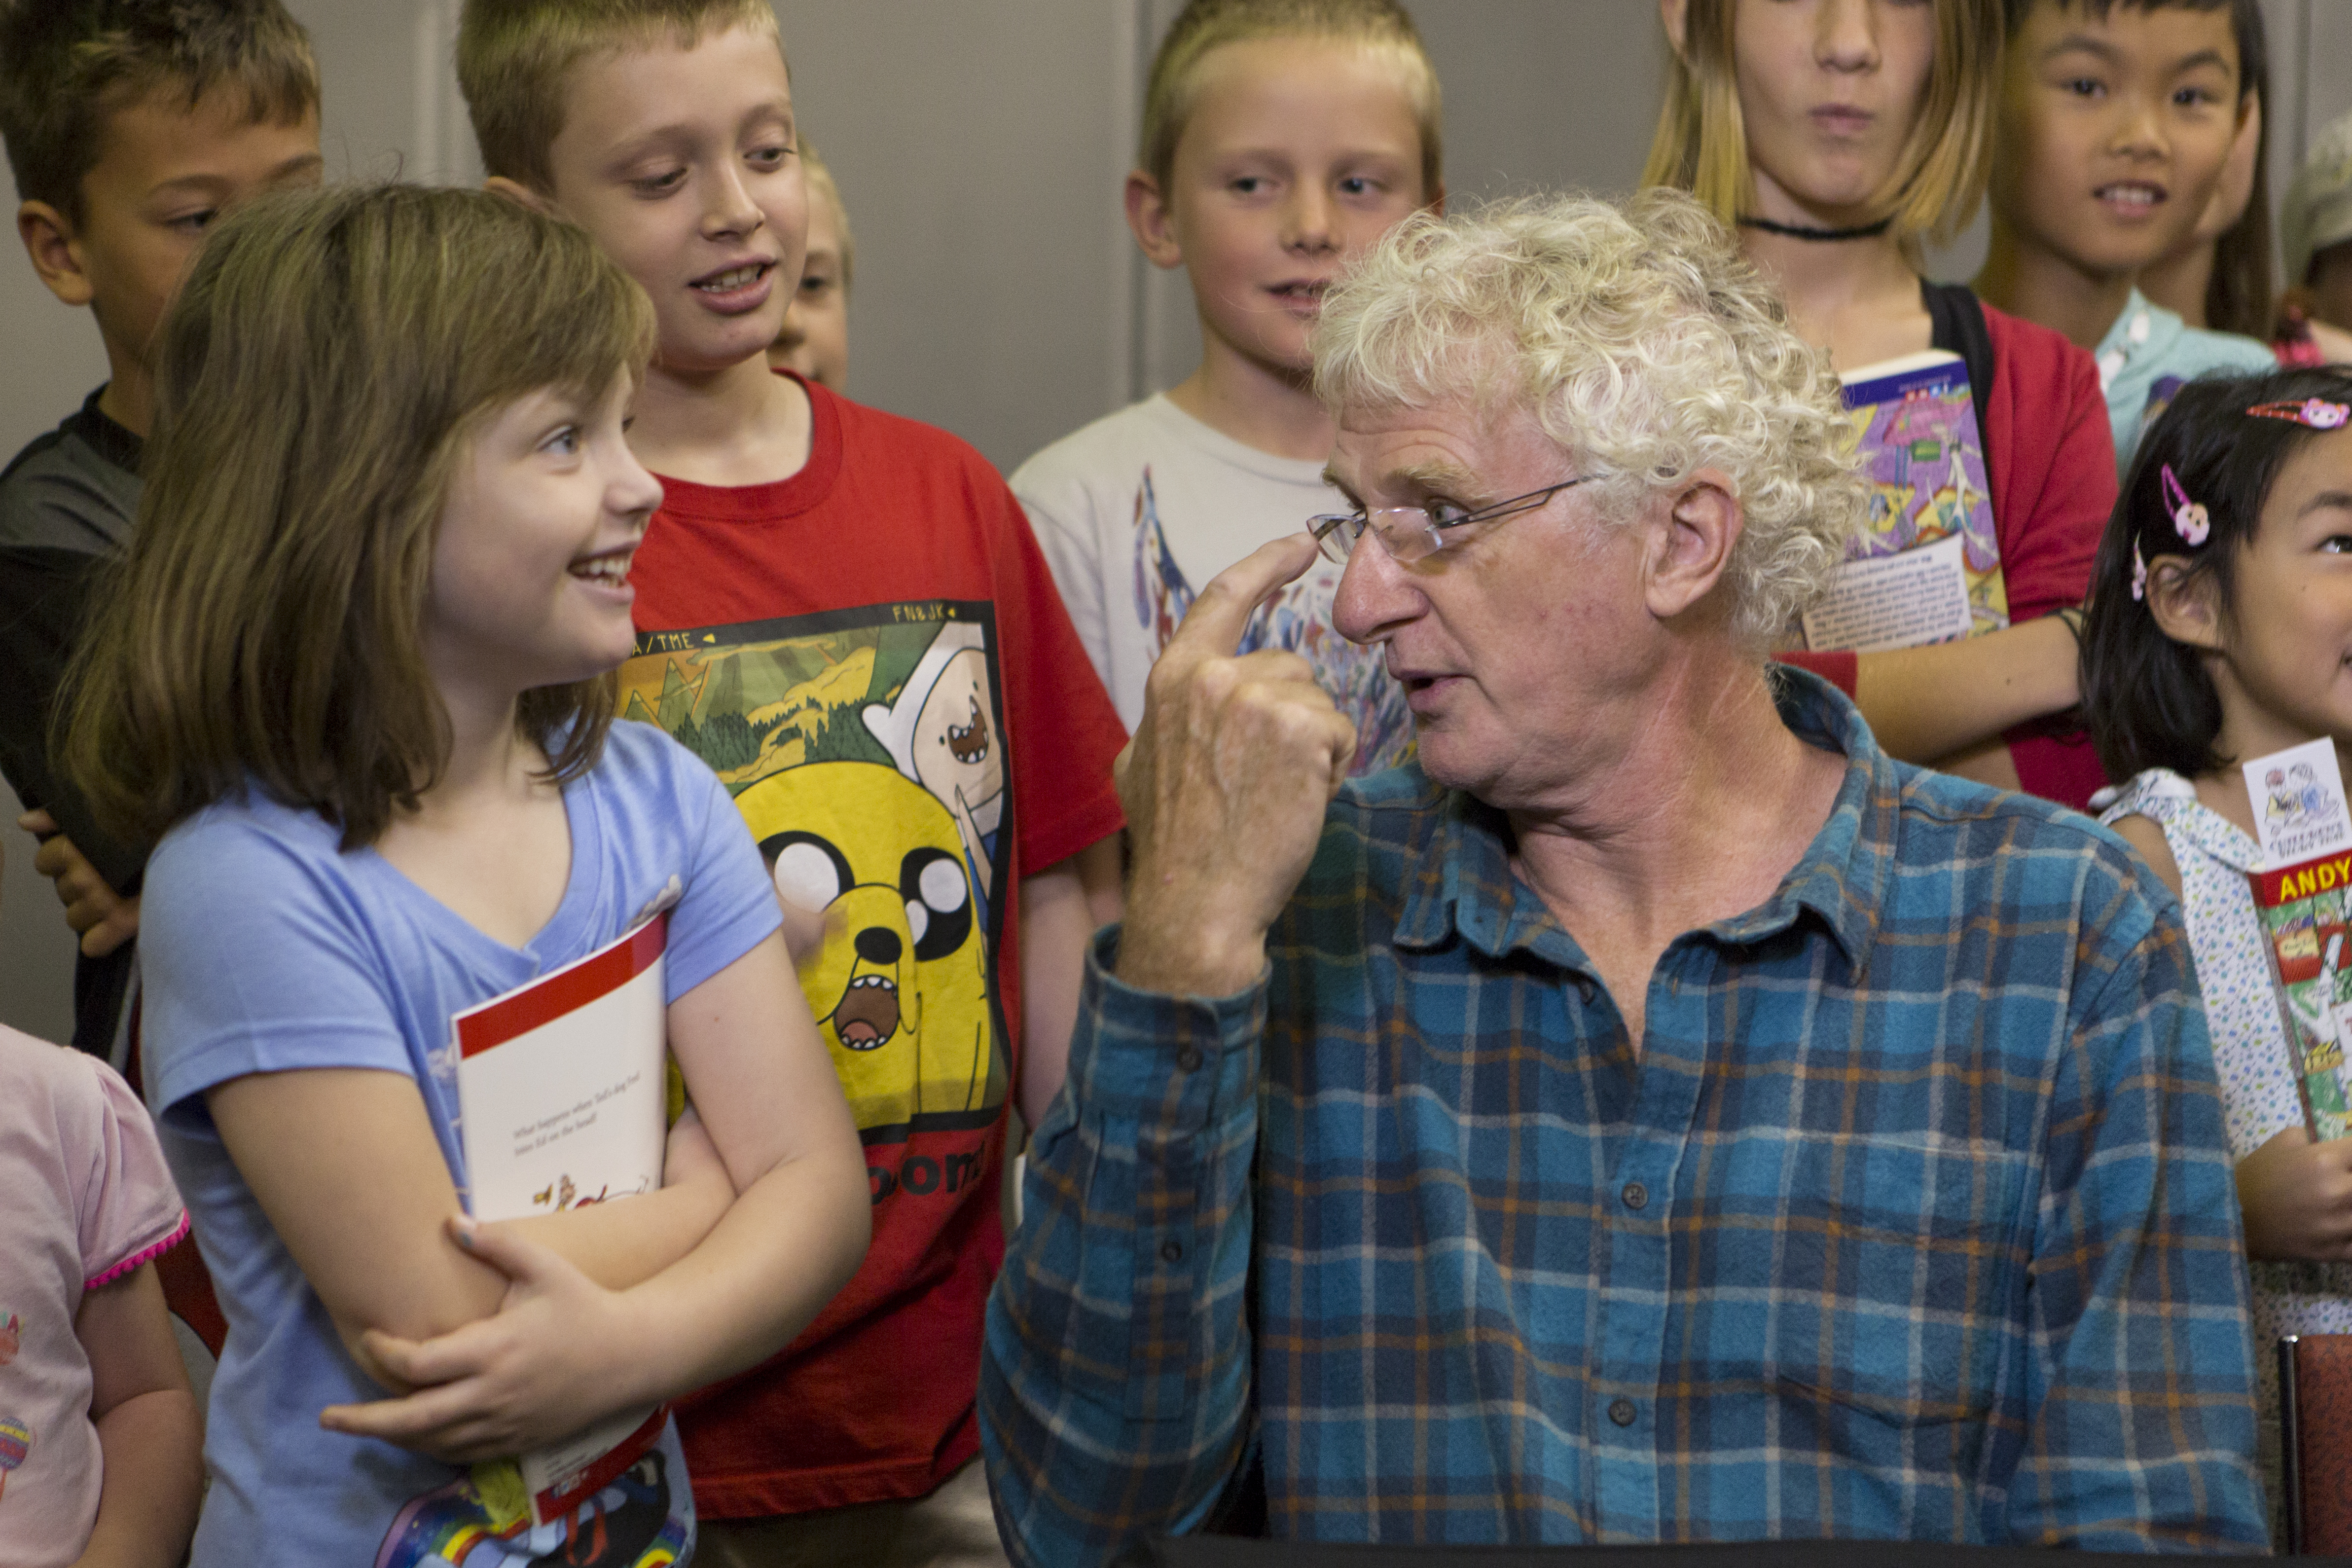 Image: Meeting Terry Denton. (Teagan Glenane)